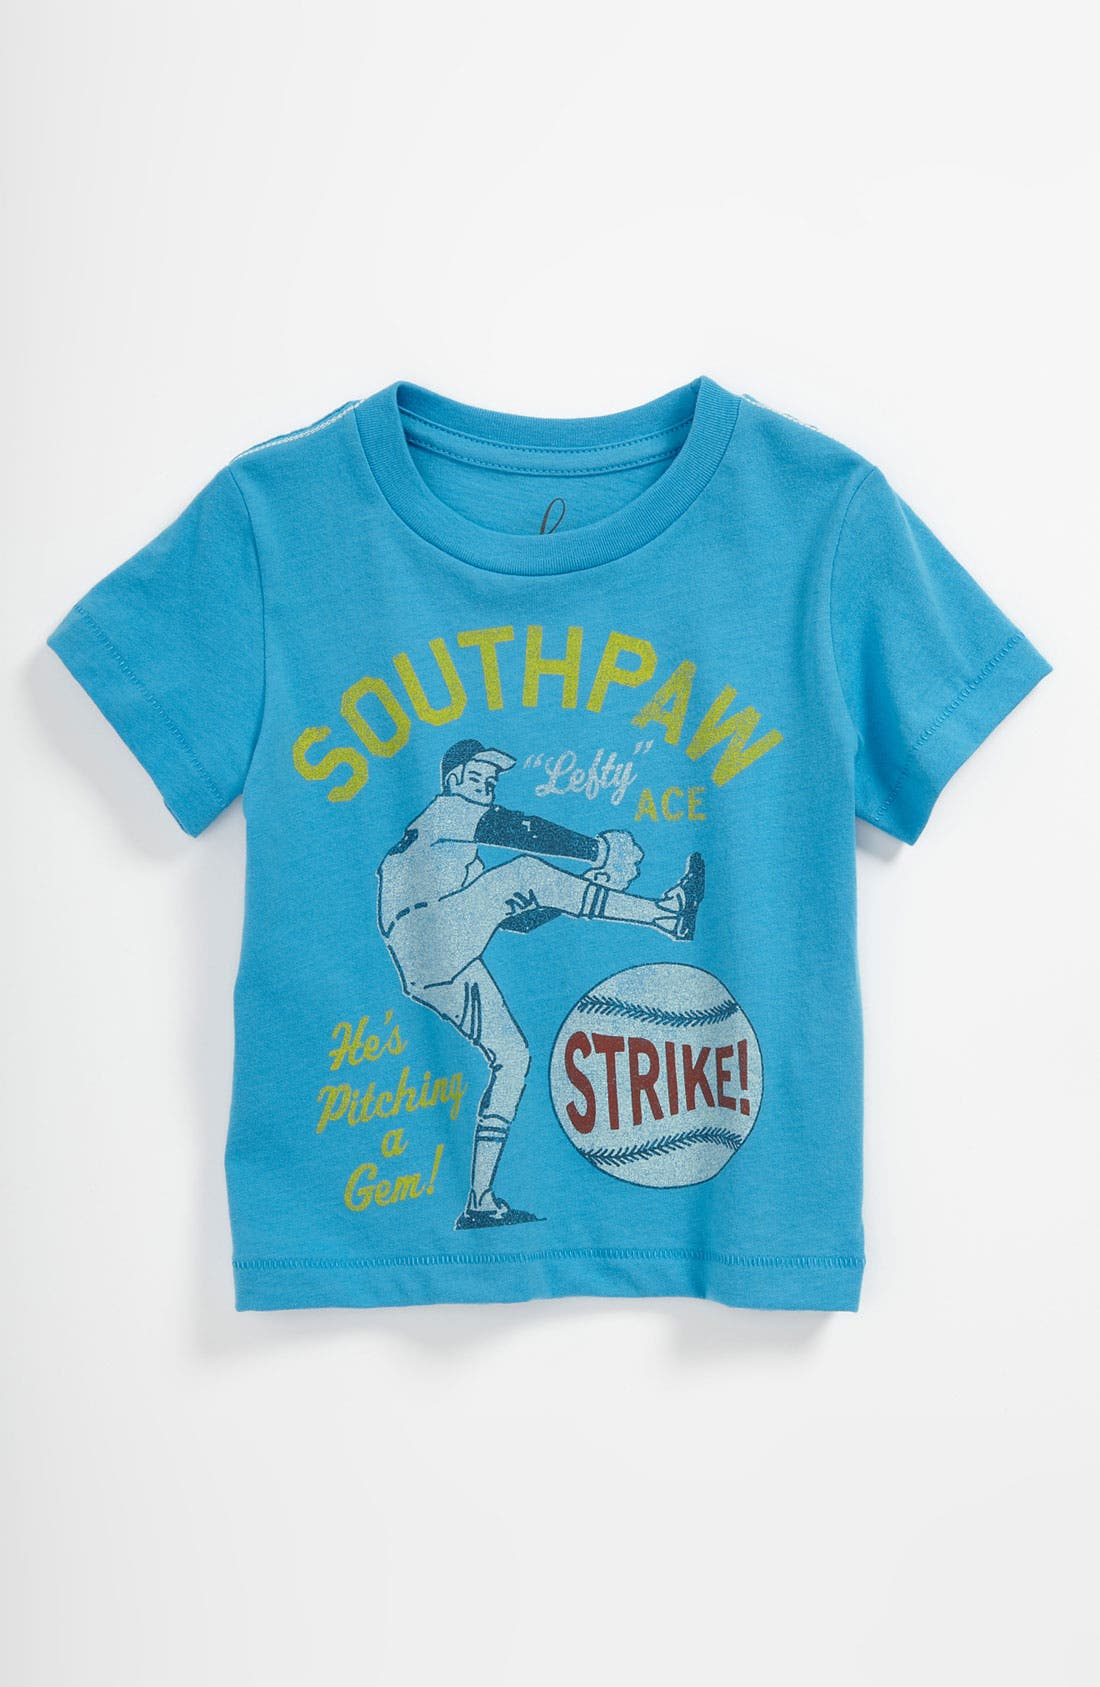 Alternate Image 1 Selected - Peek 'Southpaw' T-Shirt (Baby)